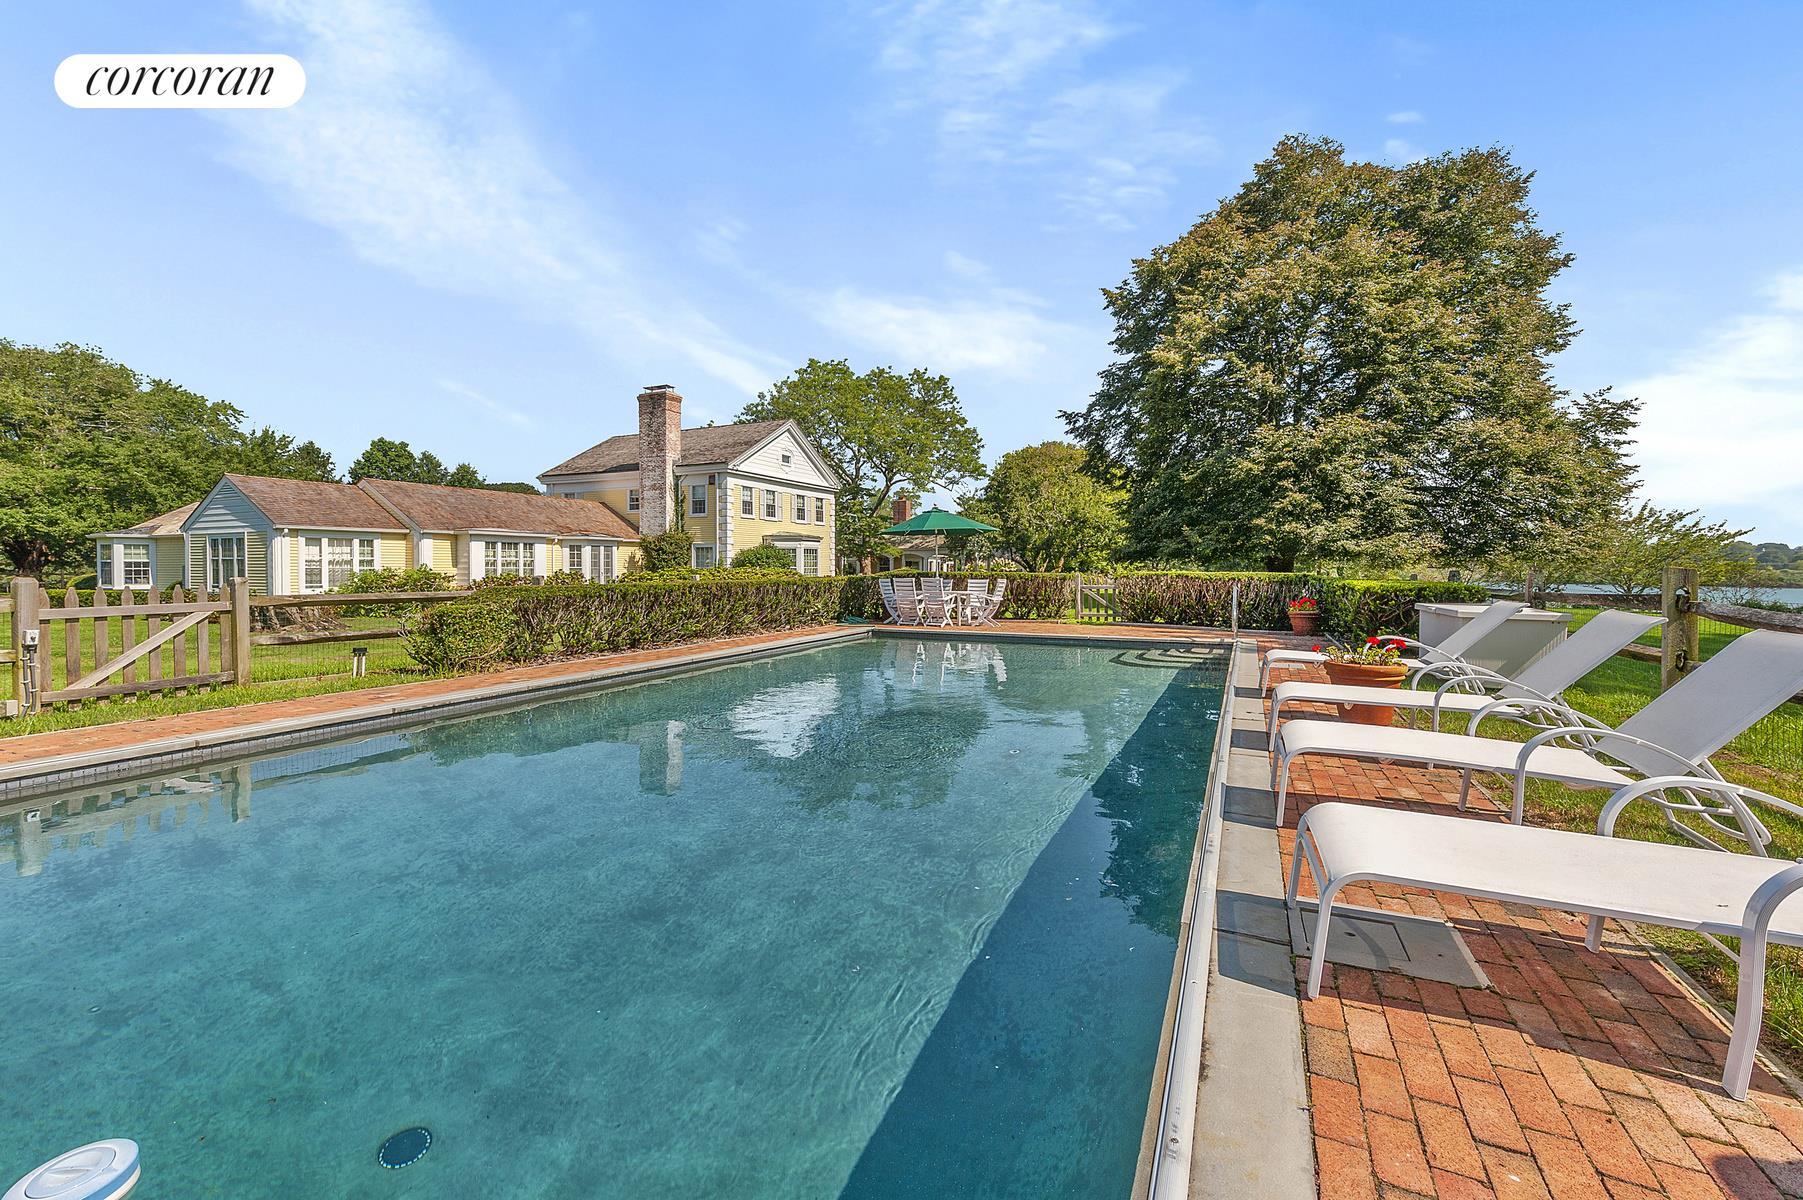 363 & 351 Sagaponack Rd, Select a Category